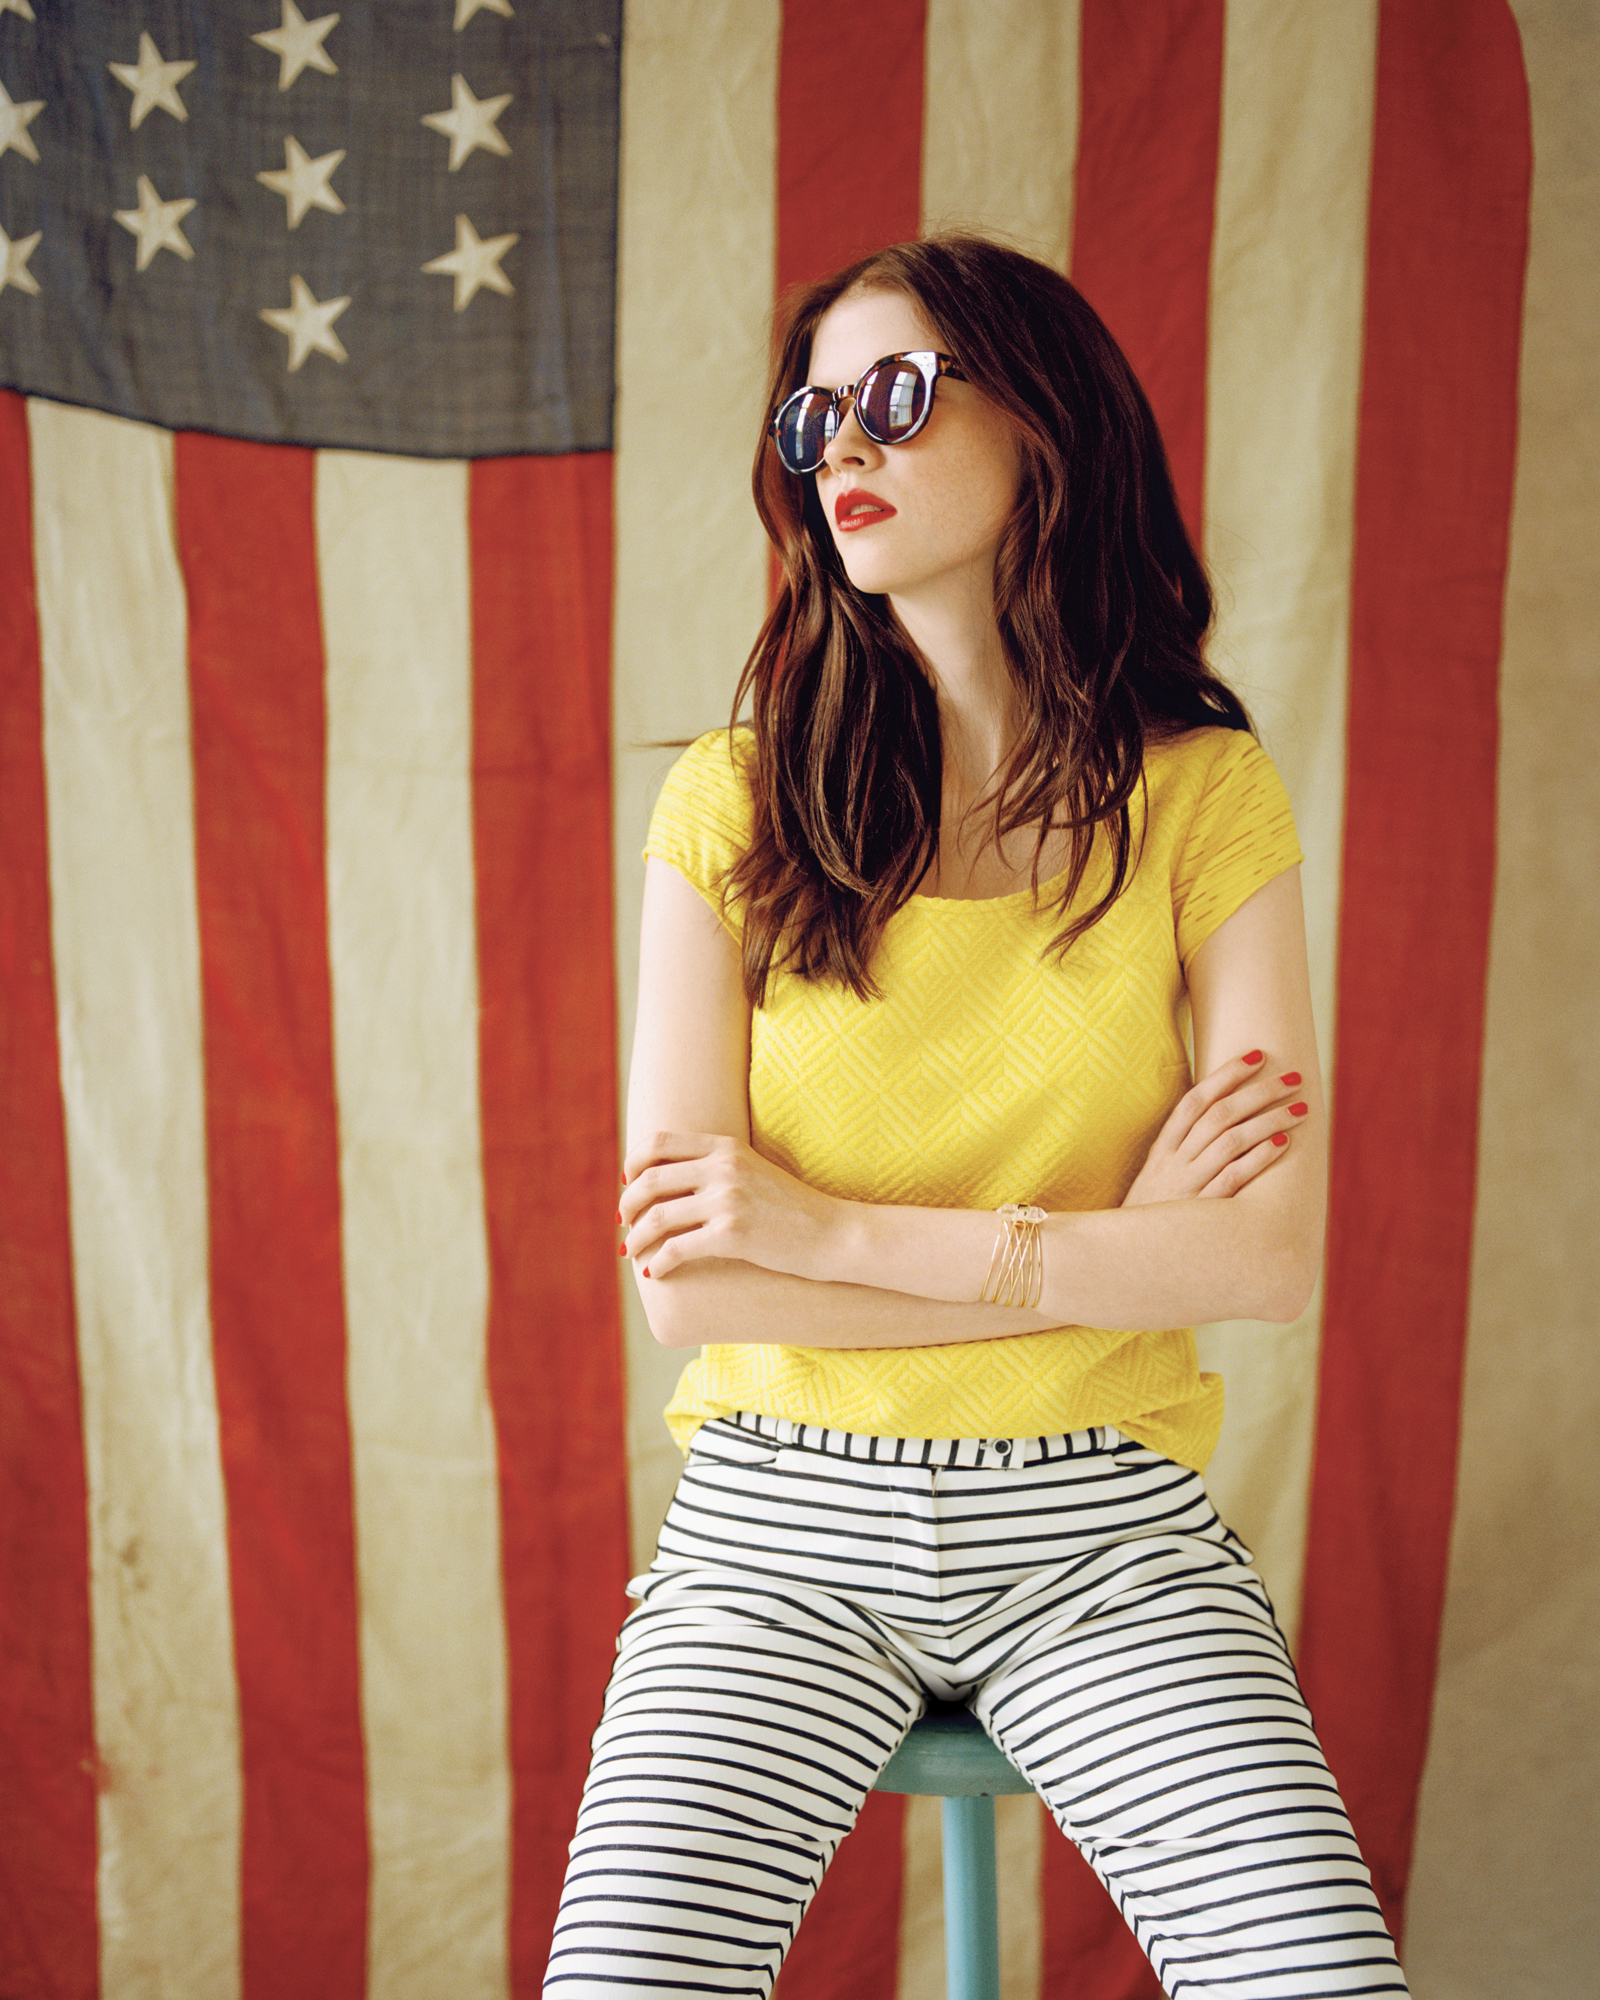 Model wearing yellow tee and striped pants